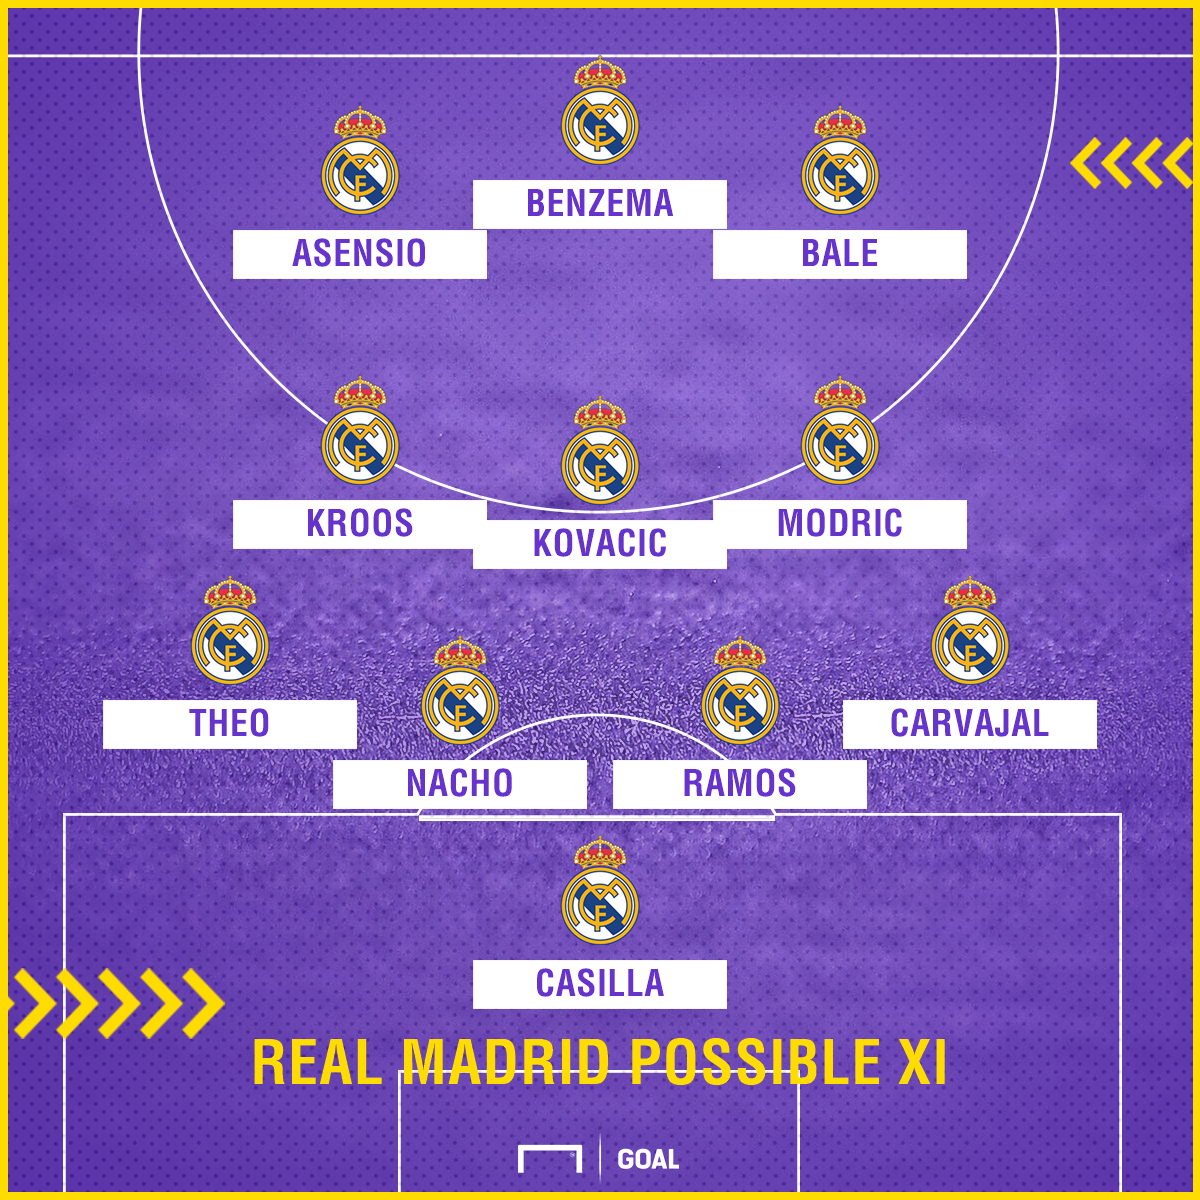 Real Madrid Team News Injuries Suspensions And Line Up